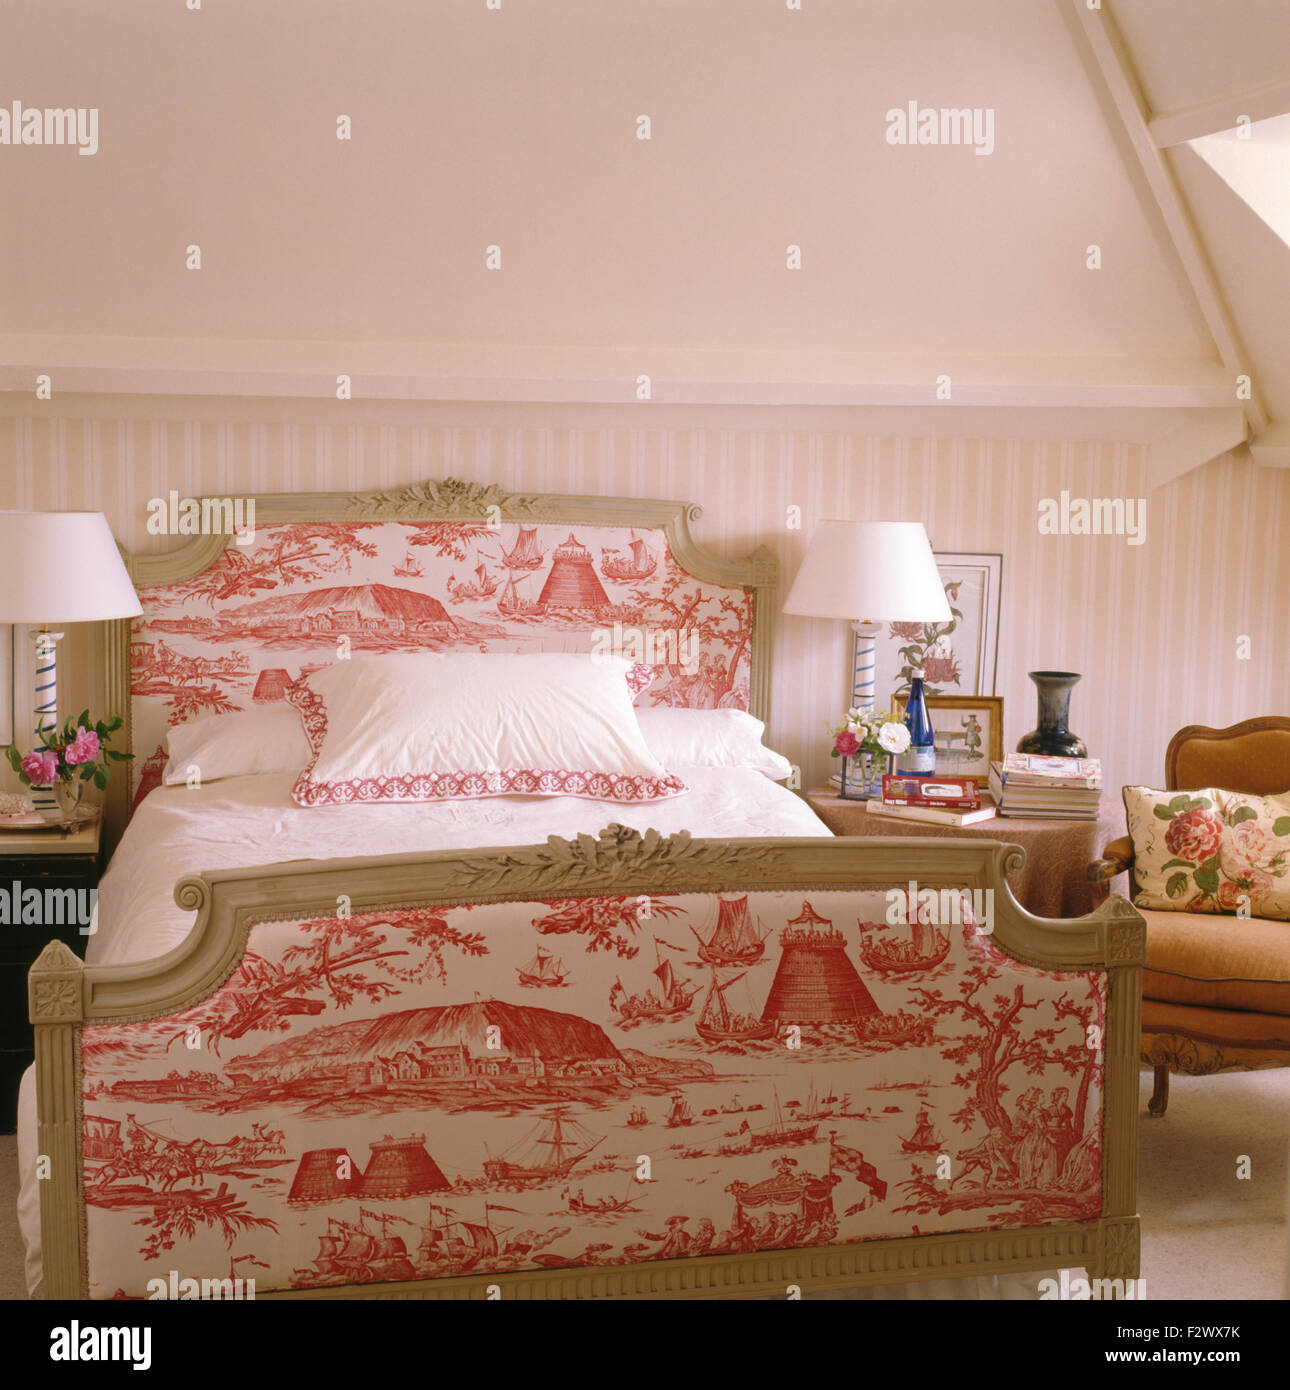 Pink+white Toile De Jouy Upholstered Bed In Traditional Bedroom